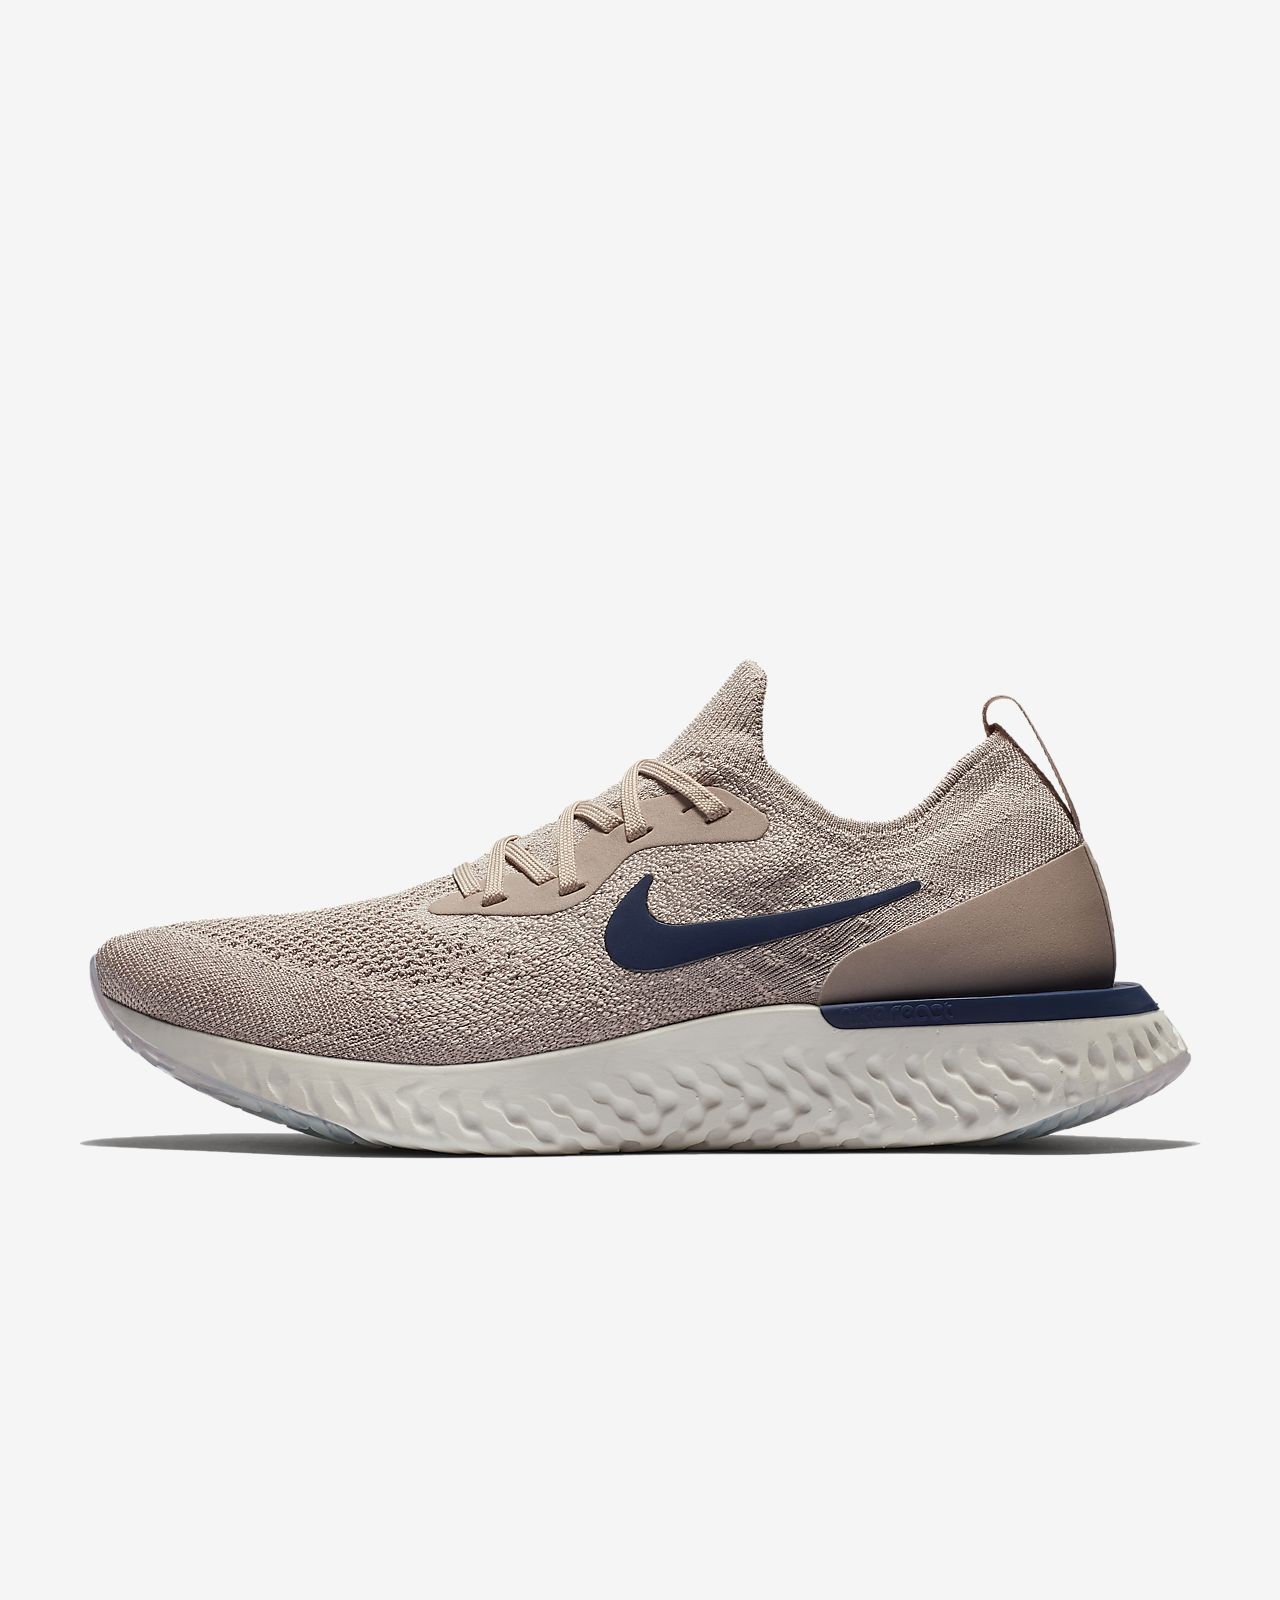 b6274664e1 Nike Epic React Flyknit Men's Running Shoe